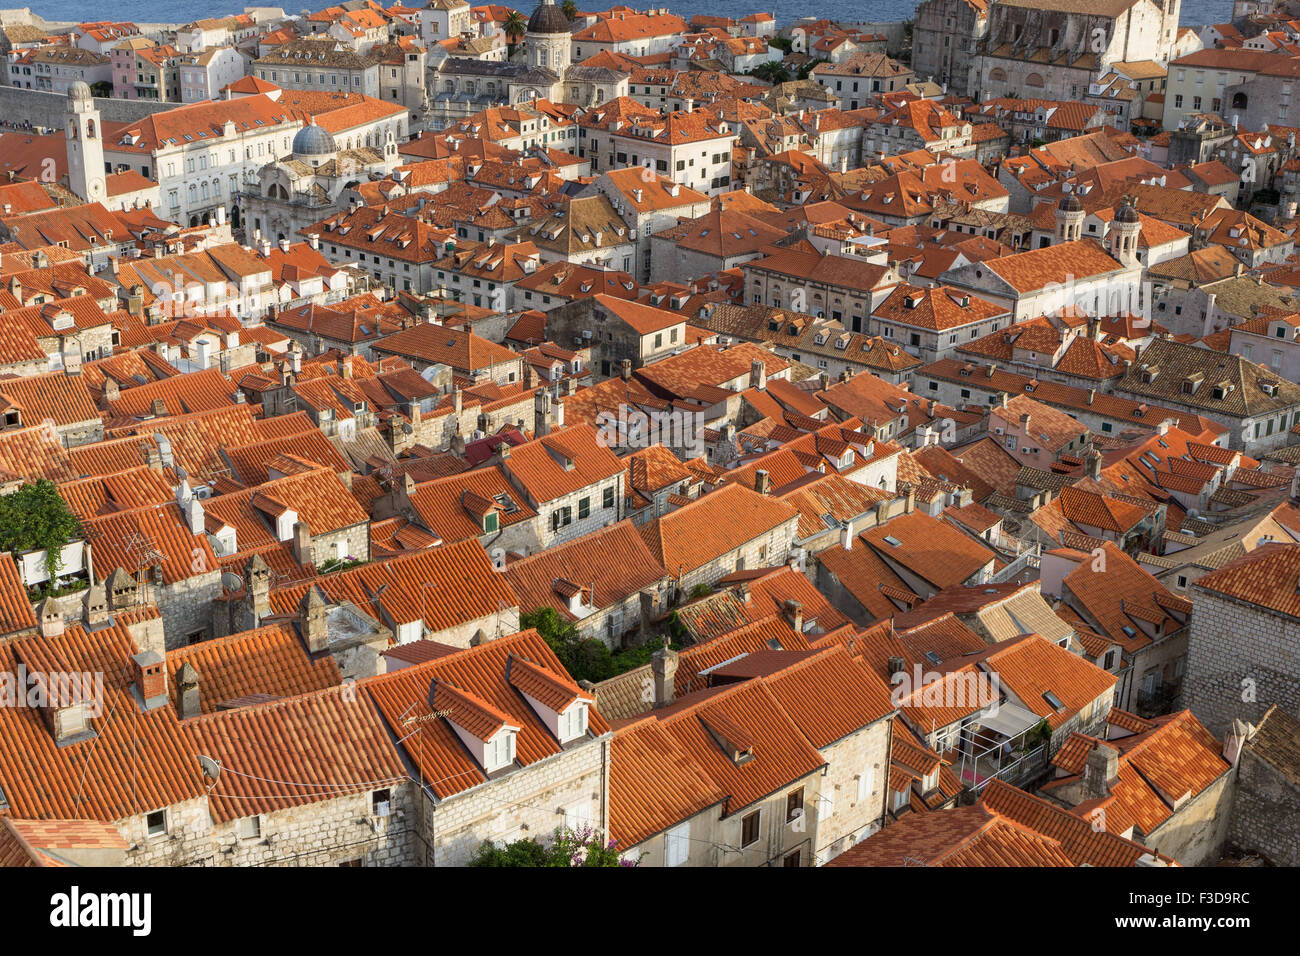 Perfect Red Roofs In The Old Town In Dubrovnik, Croatia, Viewed From Above.